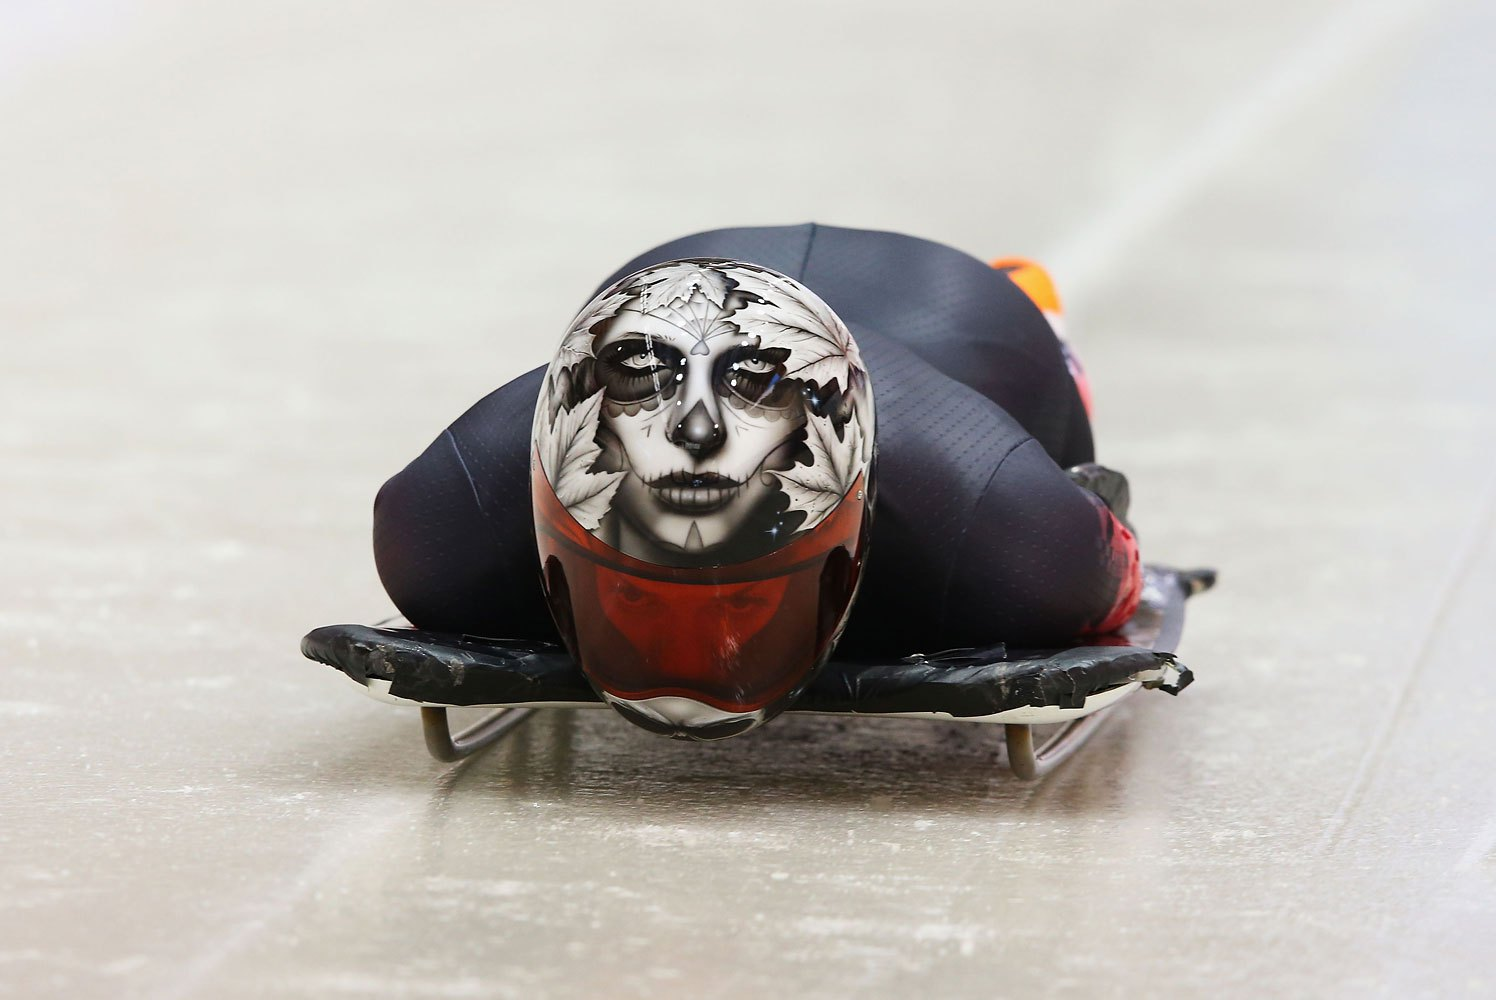 Sarah Reid of Canada makes a run during a Women's Skeleton training session on Day 1 of Winter Olympics at the Sanki Sliding Center on Feb. 8, 2014